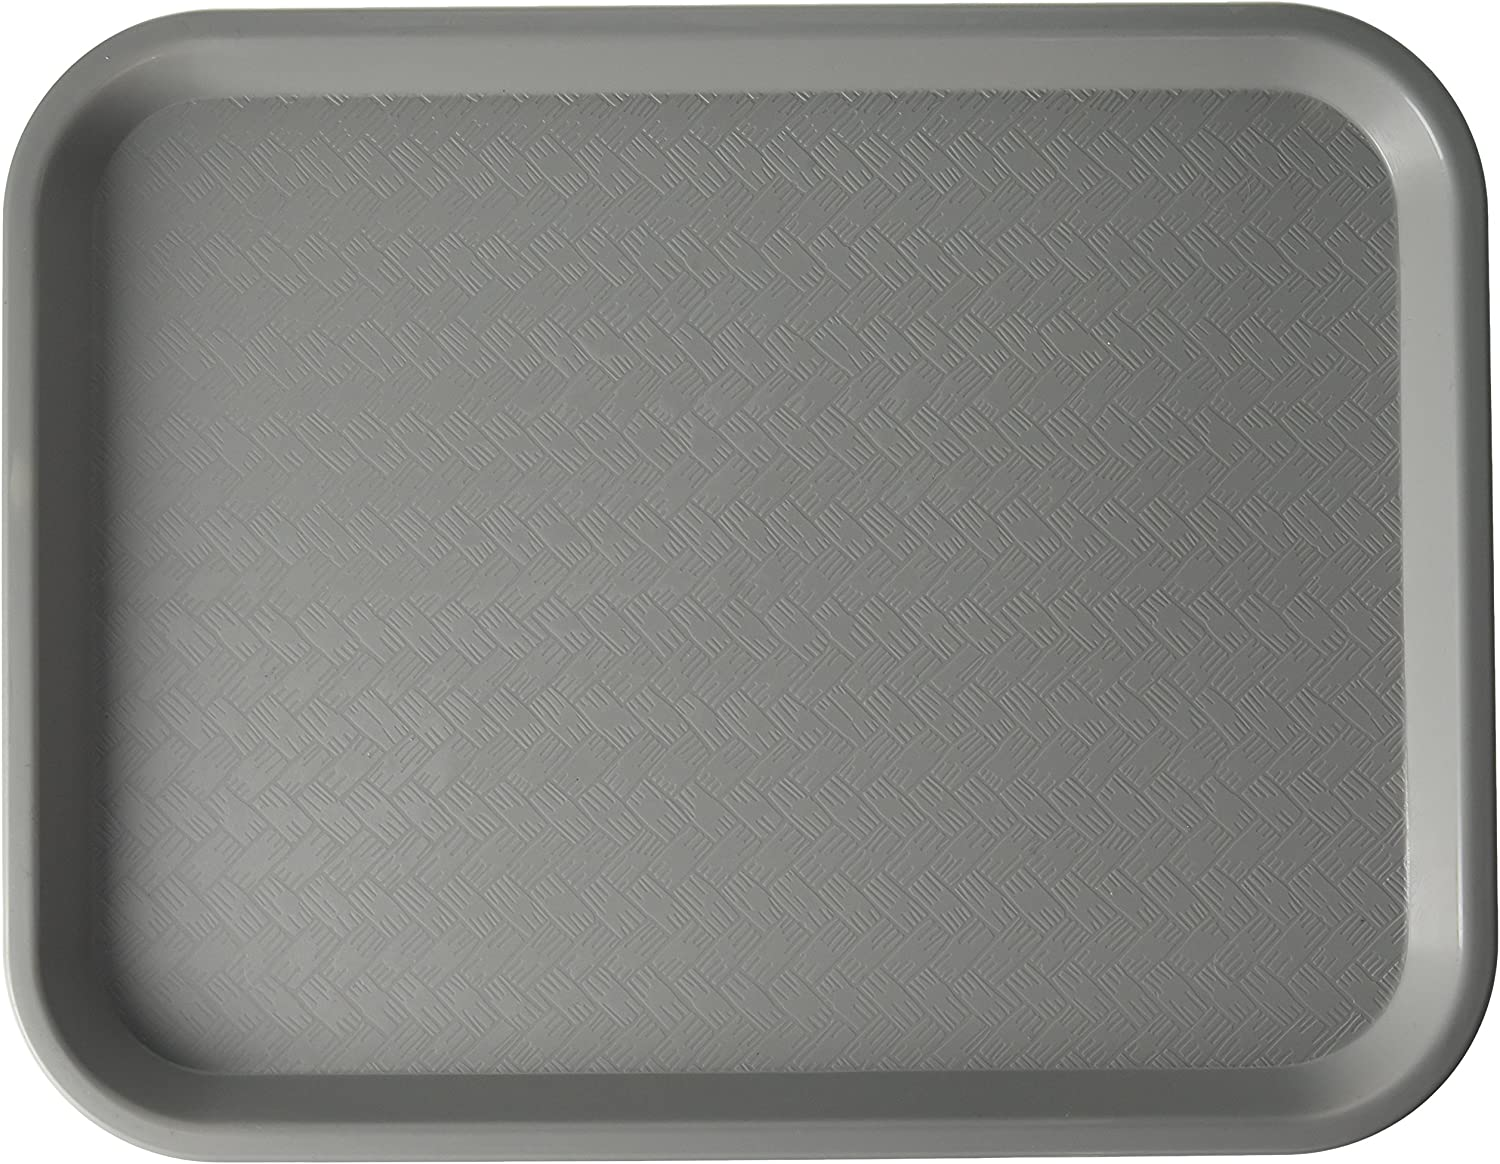 Winco Fast Food Tray, 10-Inch by 14-Inch, Gray